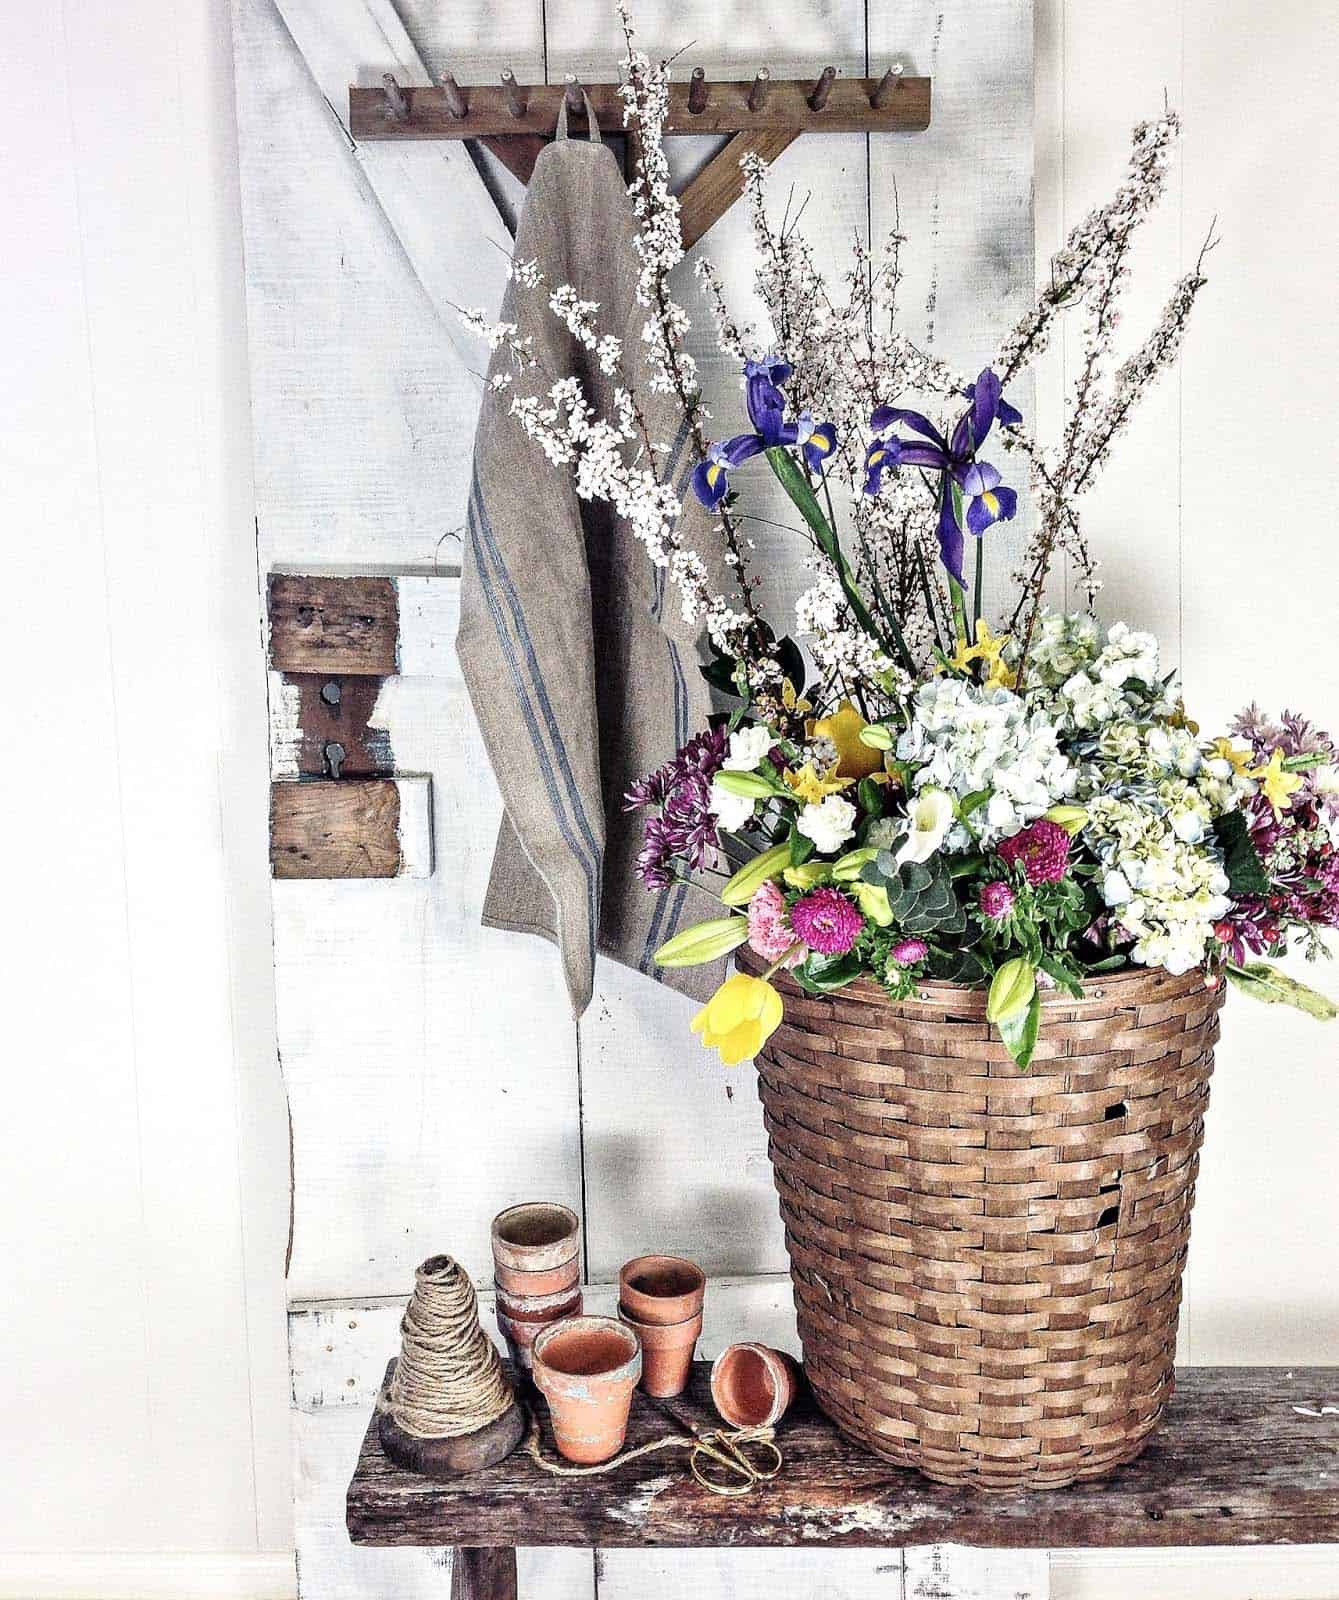 How To Decorate Your Home With Spring Floral Arrangements-14-1 Kindesign